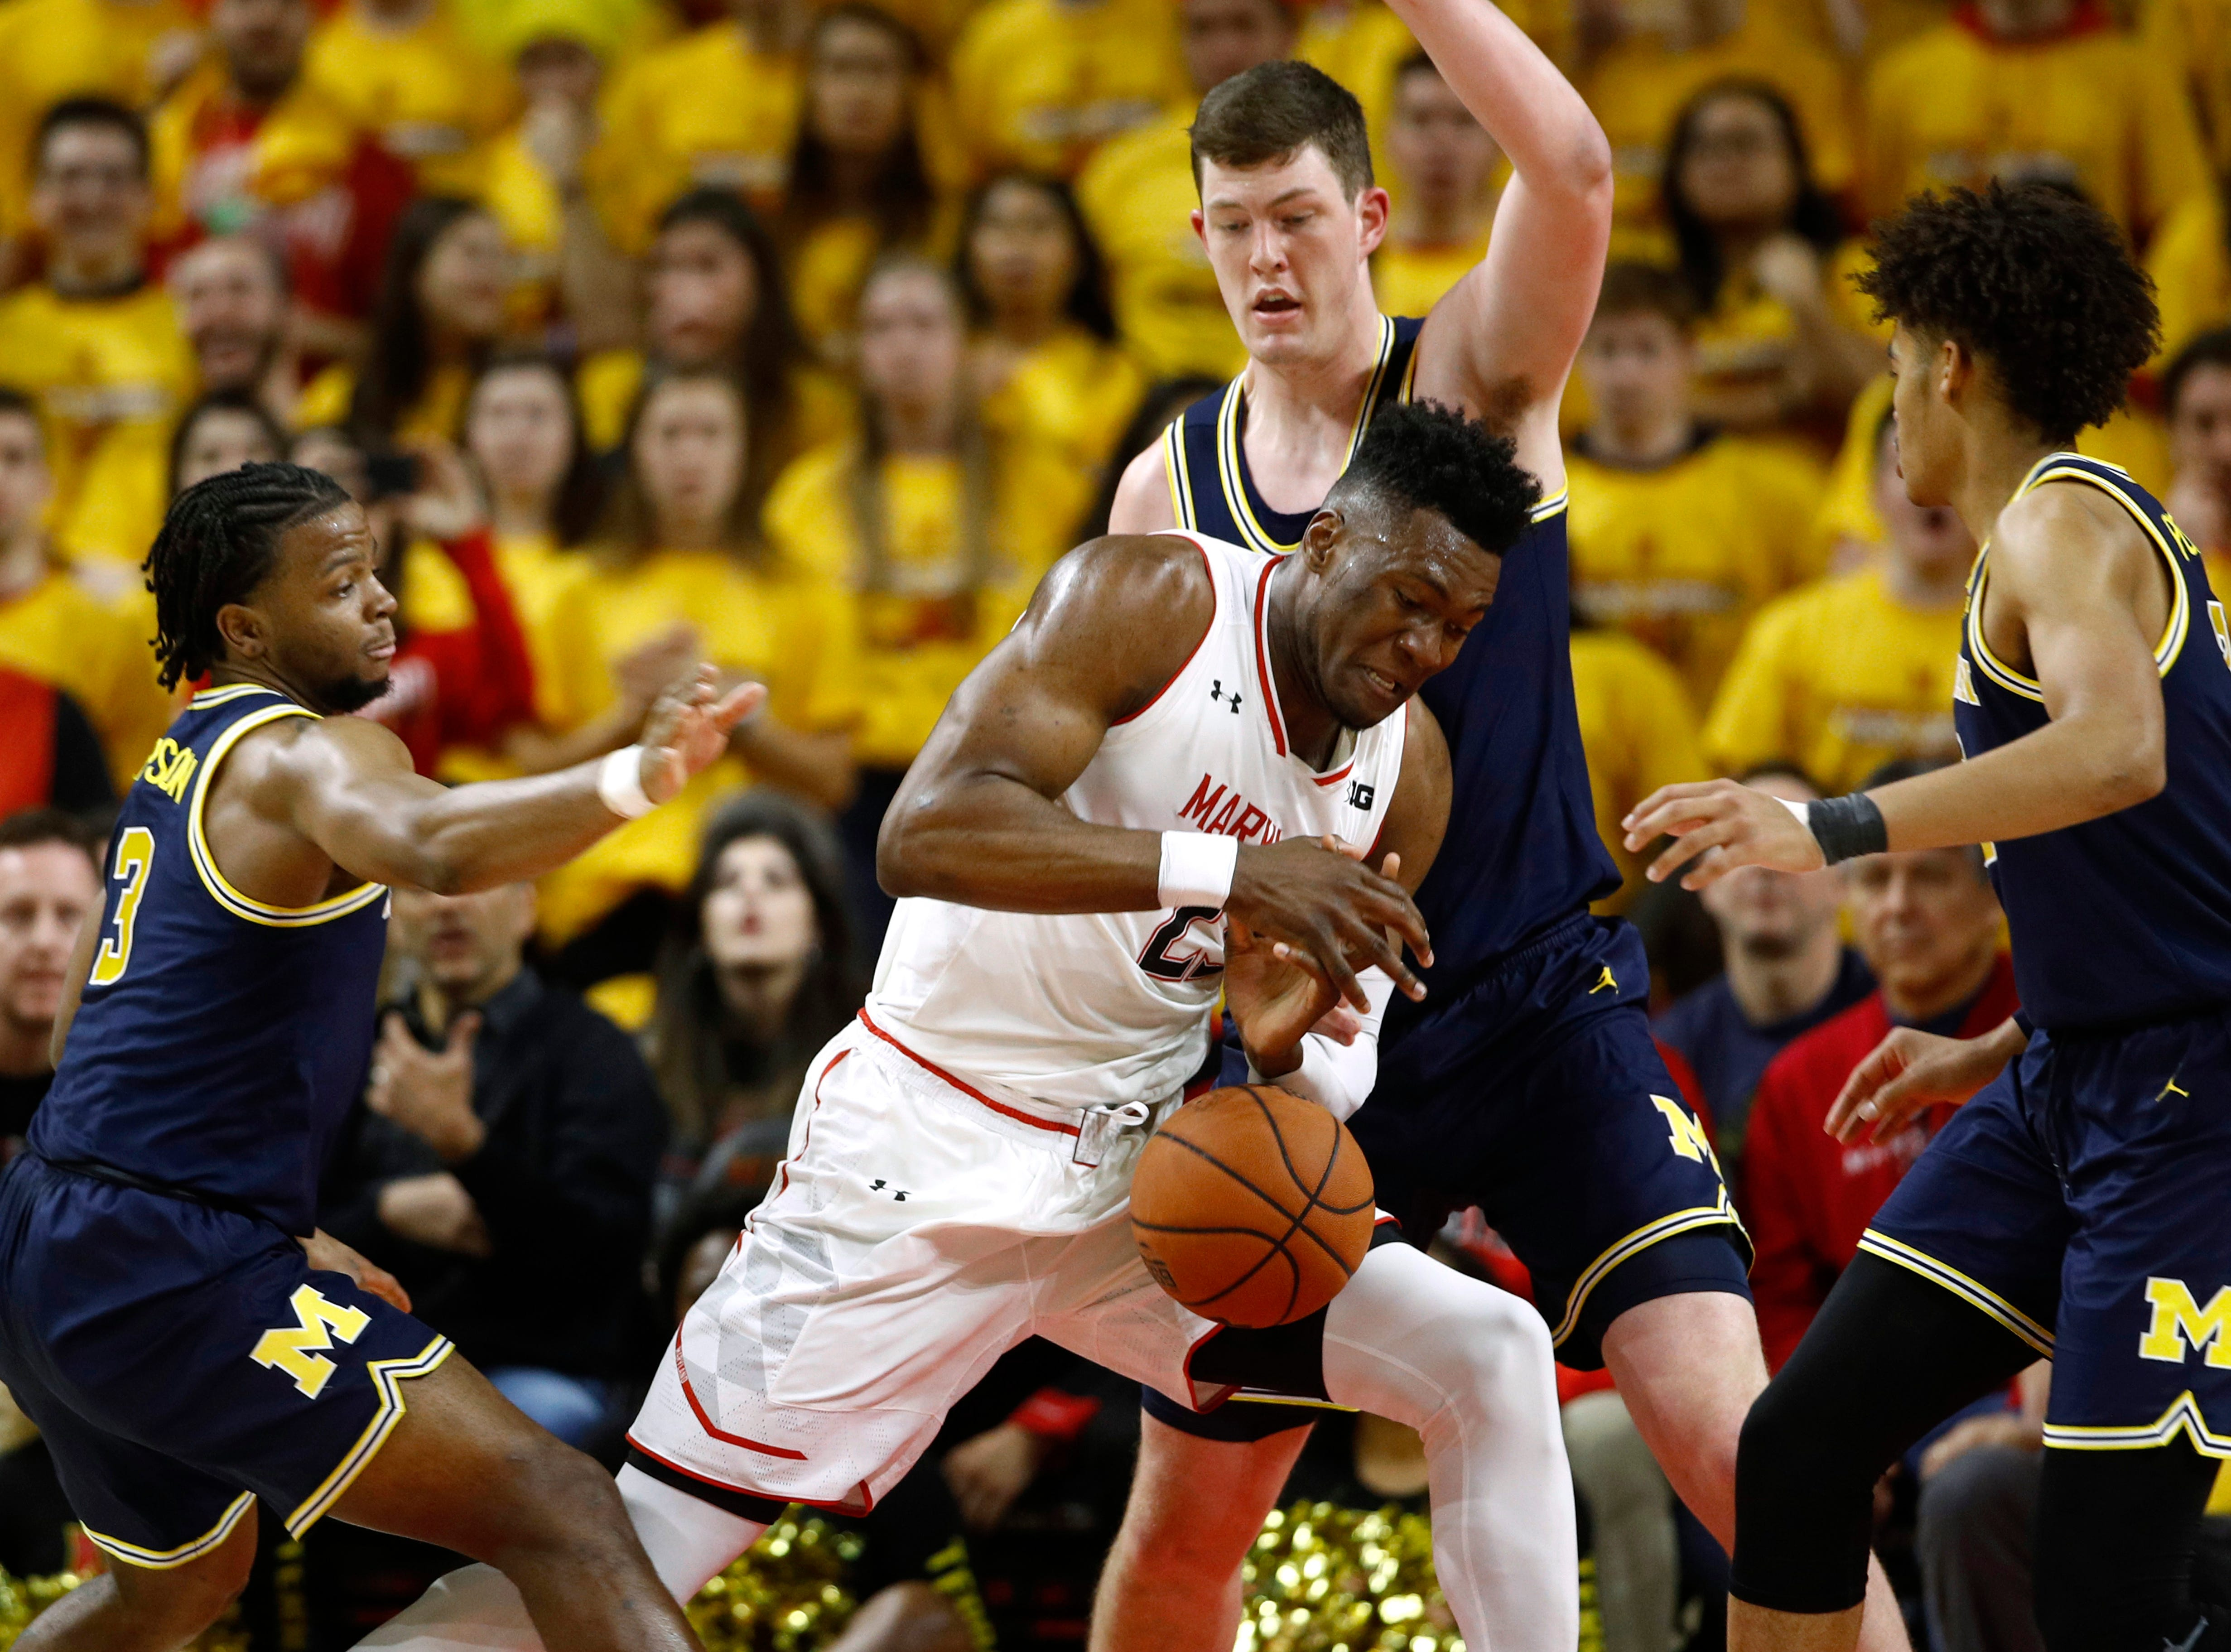 5. Maryland (21-9, 12-7) – There's no way to sugarcoat things – the Terrapins had an awful week. After going on the road and getting blasted by Penn State, the Terps faced a short-handed Michigan squad at home but couldn't take advantage. They're now in a precarious spot, needing to win the finale against Minnesota while hoping for a loss from Wisconsin to jump out of the Thursday games at the Big Ten tournament and earn a double-bye. Last week: 5.